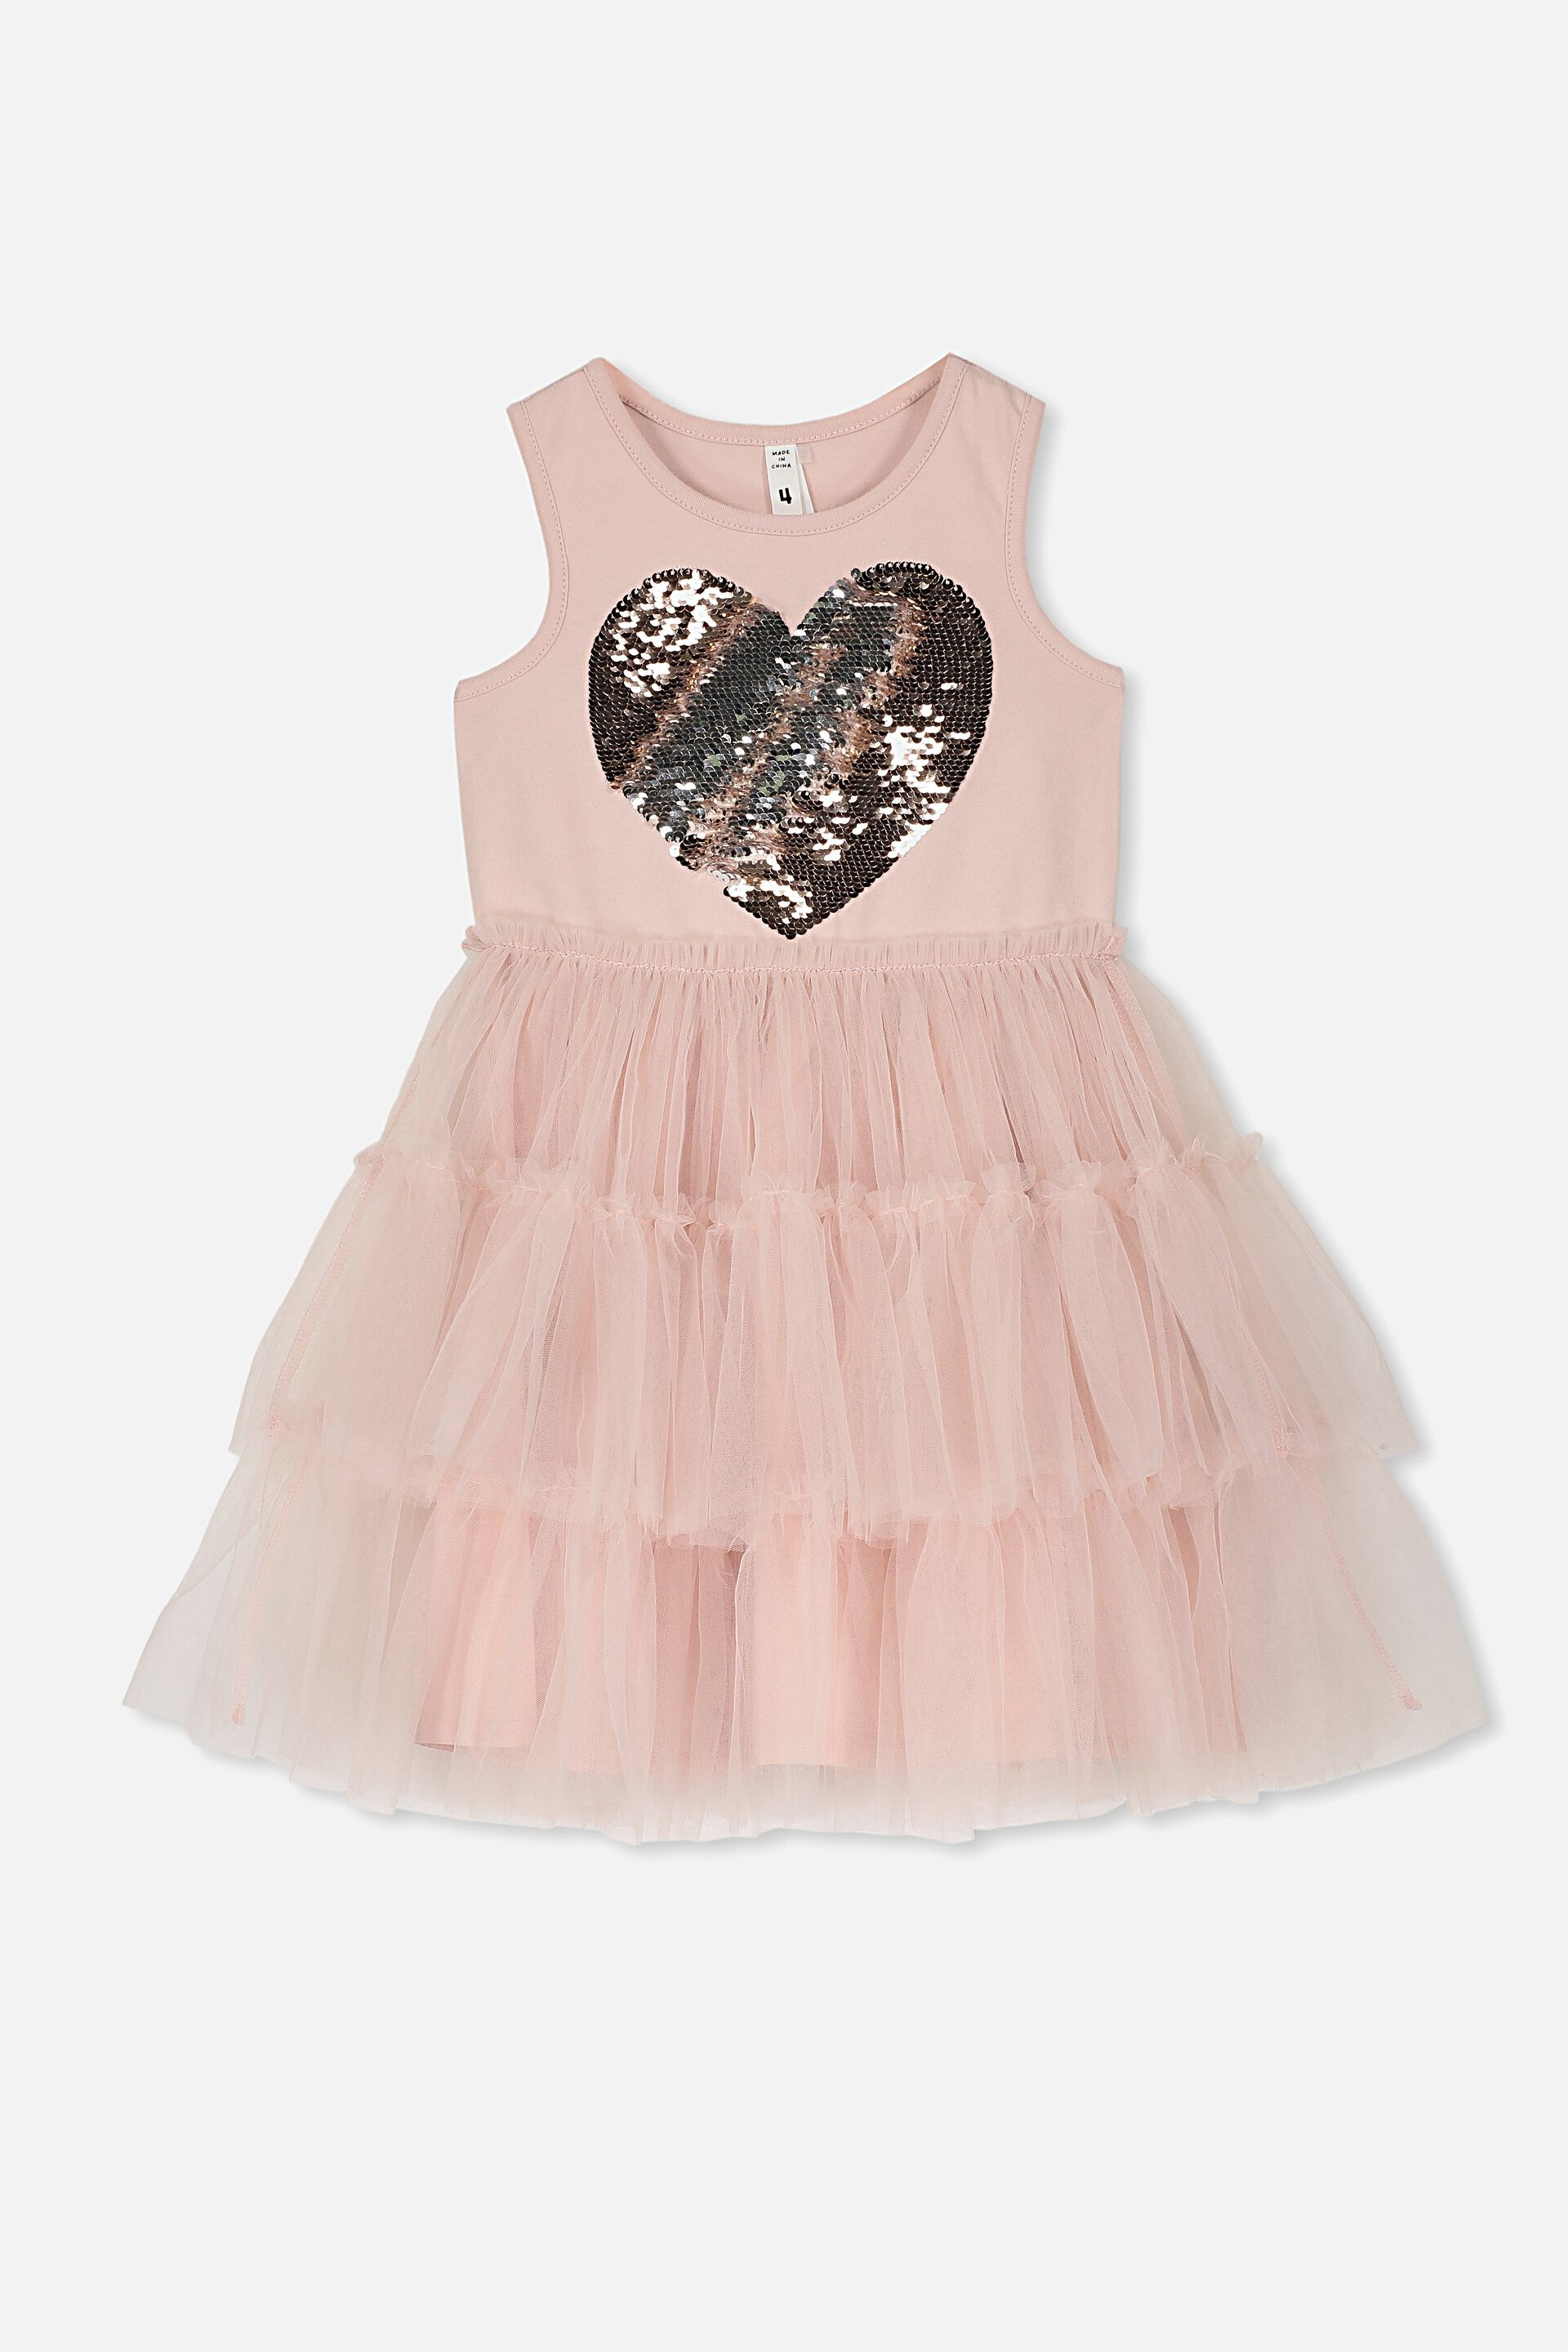 Details about PinkSilver Special Occasion Princess Dress Girls Plus Size 14.5 by LOVE NEW